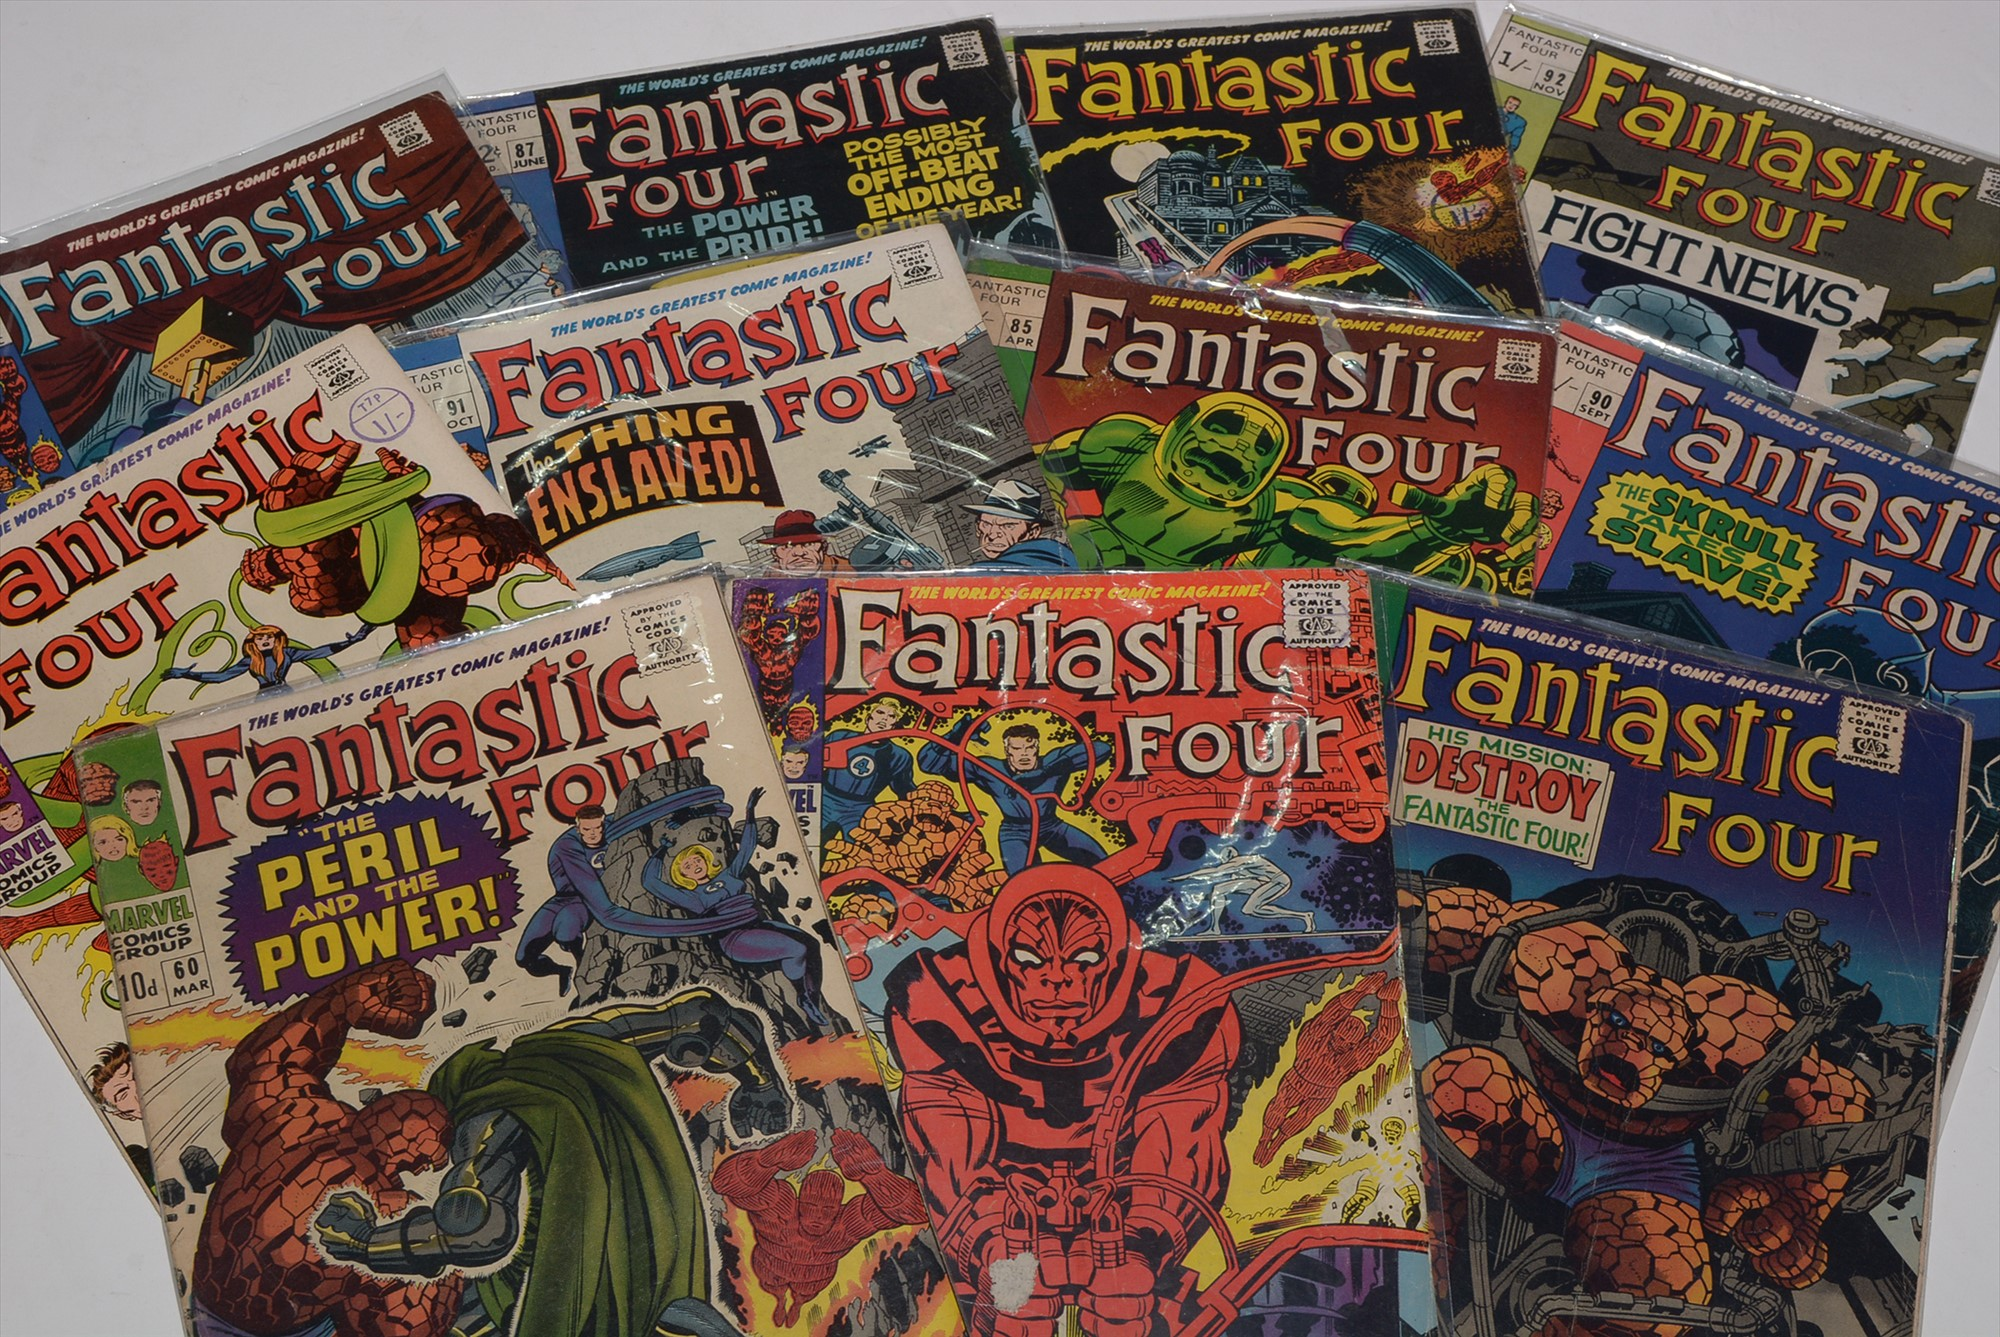 Fantastic Four No's. 60, 68, 77, 85, 87, 88, 90, 91, 92, 93 and 94.